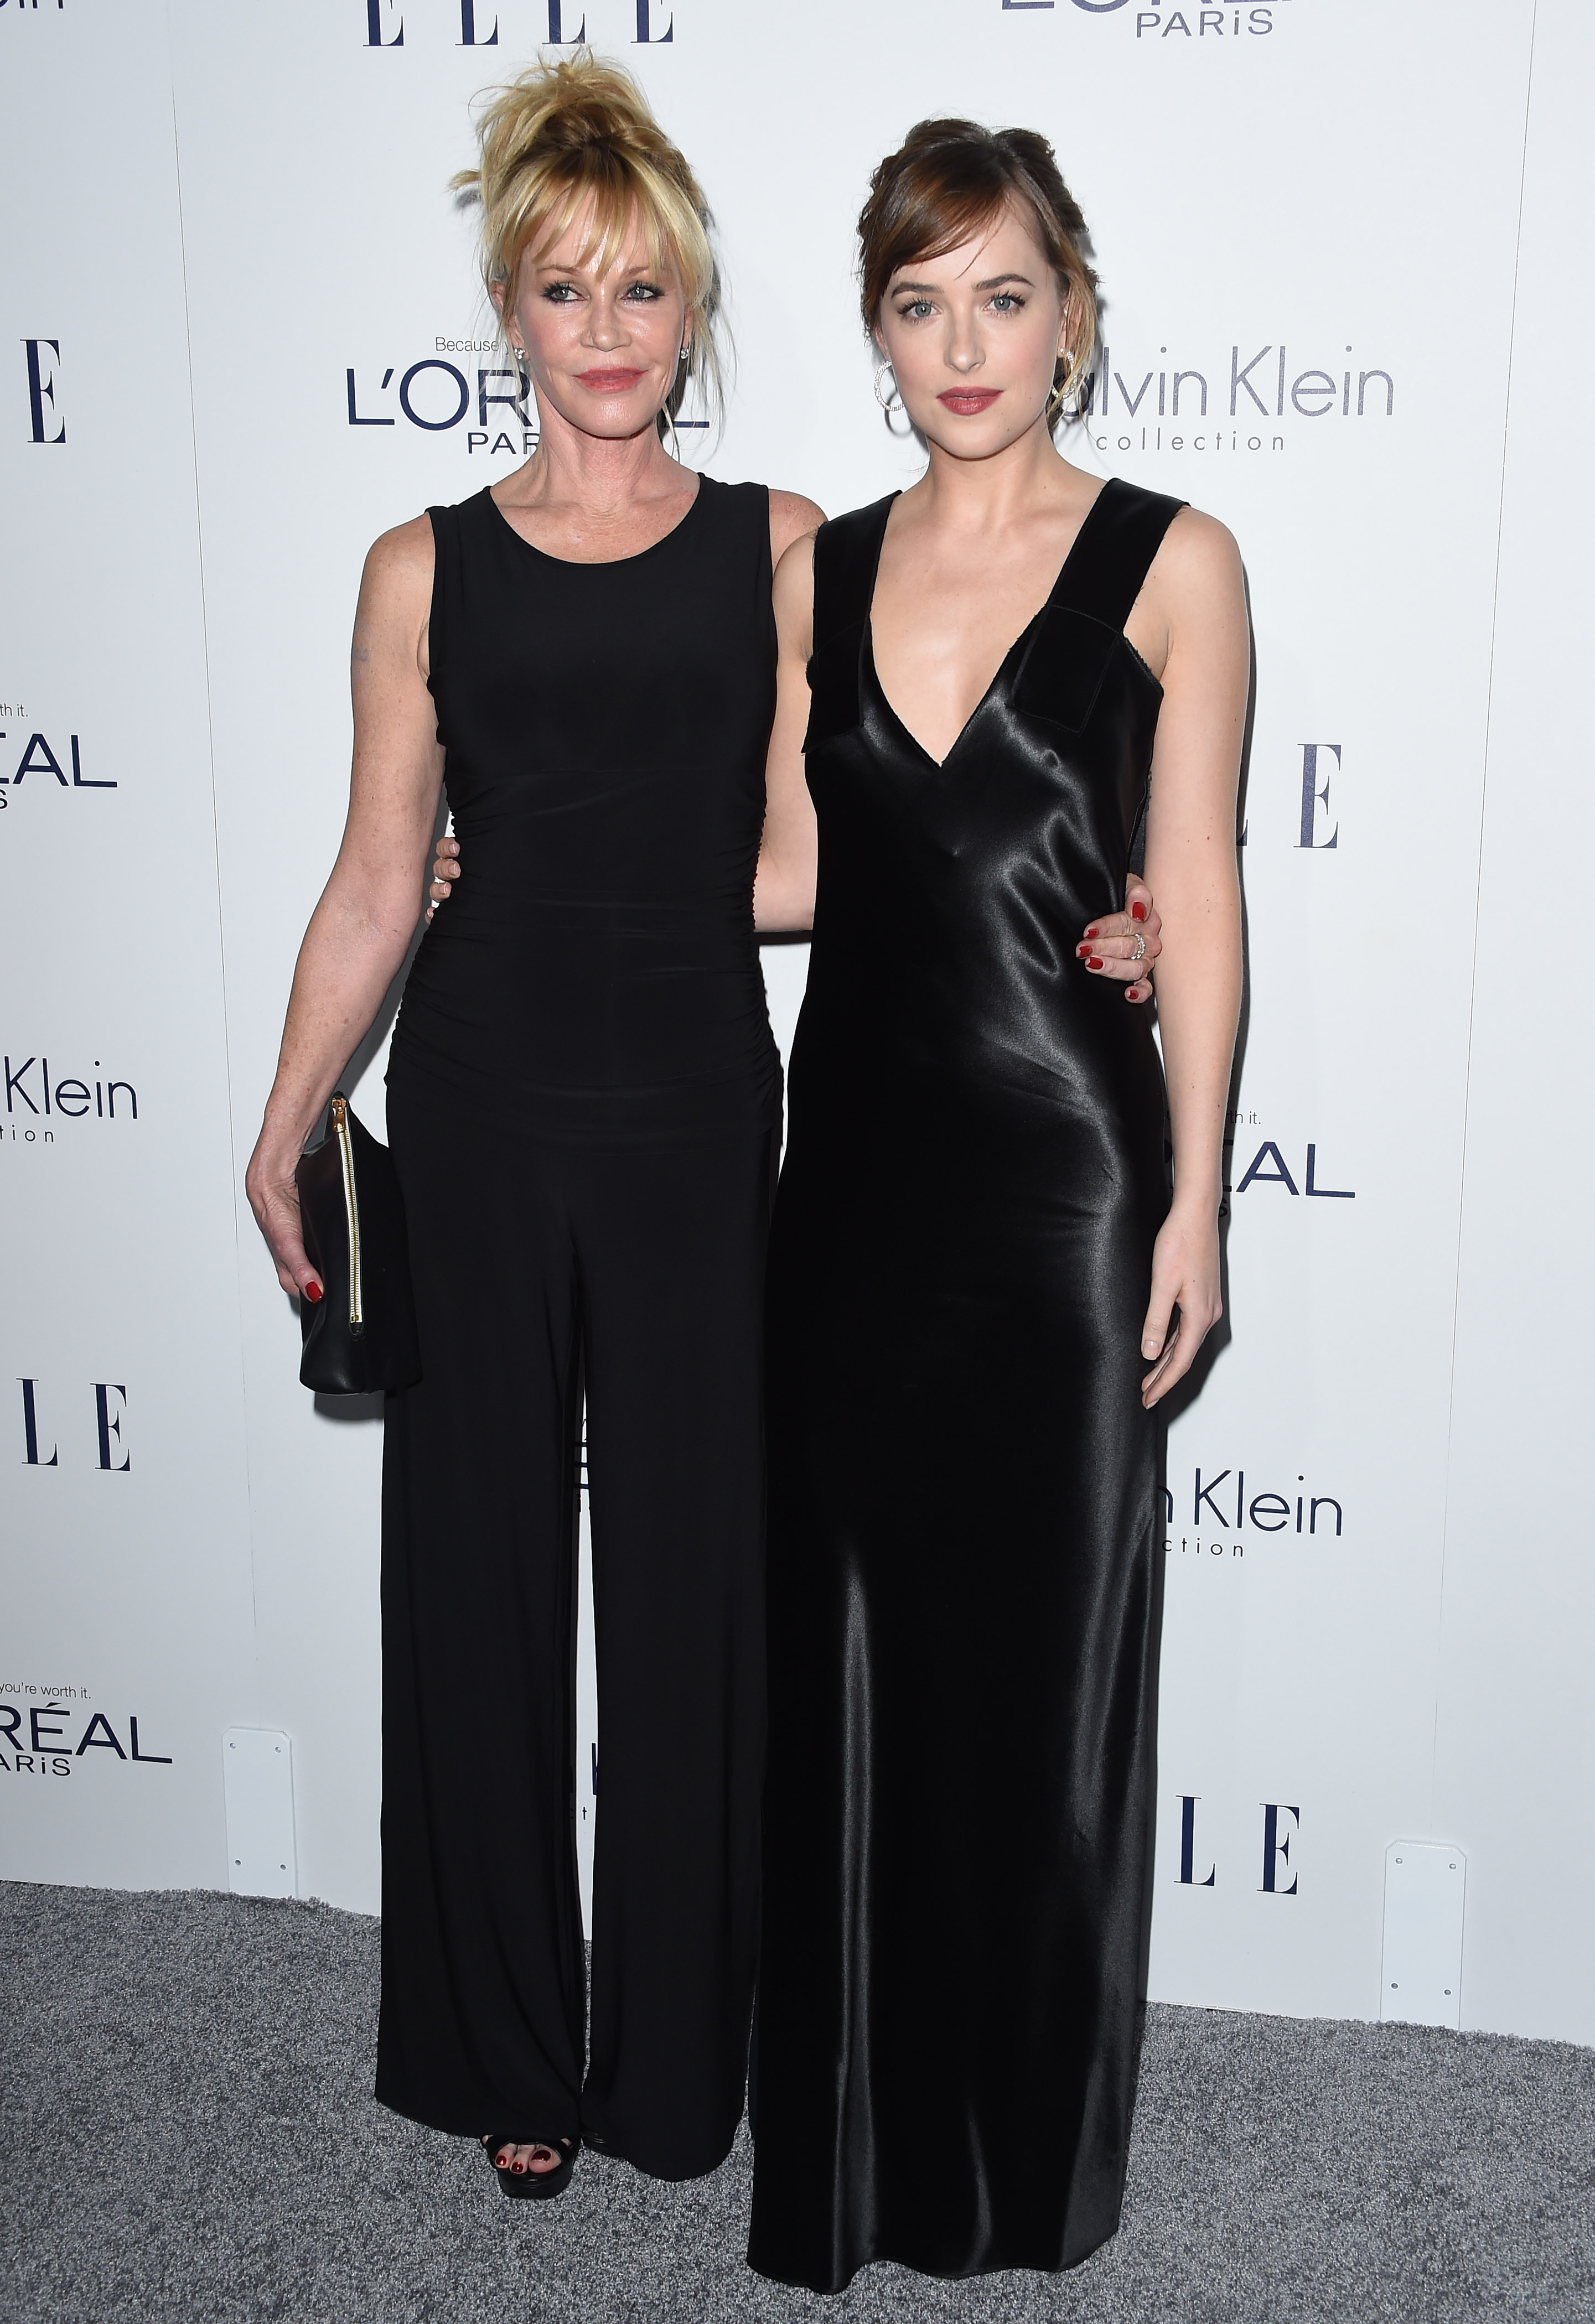 """<p><a href=""""https://style.nine.com.au/2018/08/30/10/34/venice-film-festival-fashion"""" target=""""_blank"""" title=""""Dakota Johnson"""" draggable=""""false"""">Dakota Johnson</a> has been the style standout at this week's Venice Film Festival.</p> <p>In what may be the 28 year-old's real standout moment, the<em>Fifty Shades</em> star embodied all things 'Old Hollywood' as she matched thered carpetin a strapless silk Christian Dior Haute Couture dress. Johnson paired the gown with red Jimmy Choo heels and Messika Paris jewelry.</p> <p>Earlier in the day, the actress arrived by boat pulling out all the stops in a white strapless lace gown, also by Dior.</p> <p>The prestigious festival isn't the only time the <a href=""""https://style.nine.com.au/2017/04/06/11/11/melanie-griffith-plastic-surgery"""" target=""""_blank"""" title=""""daughter of Melanie Griffiths"""" draggable=""""false"""">daughterof Melanie Griffith</a>and DonJohnson has shone on the red carpet. </p> <p>From her tailored Dior off-the-shoulder jumpsuit at last year's Paris Fashion Week, to the show-stopping floor-length Gucci dress she wore to this year's Golden Globe Awards, the actress always hits the mark.</p> <p>Click through to see all the times Dakota Johnson has wowed us.</p>"""